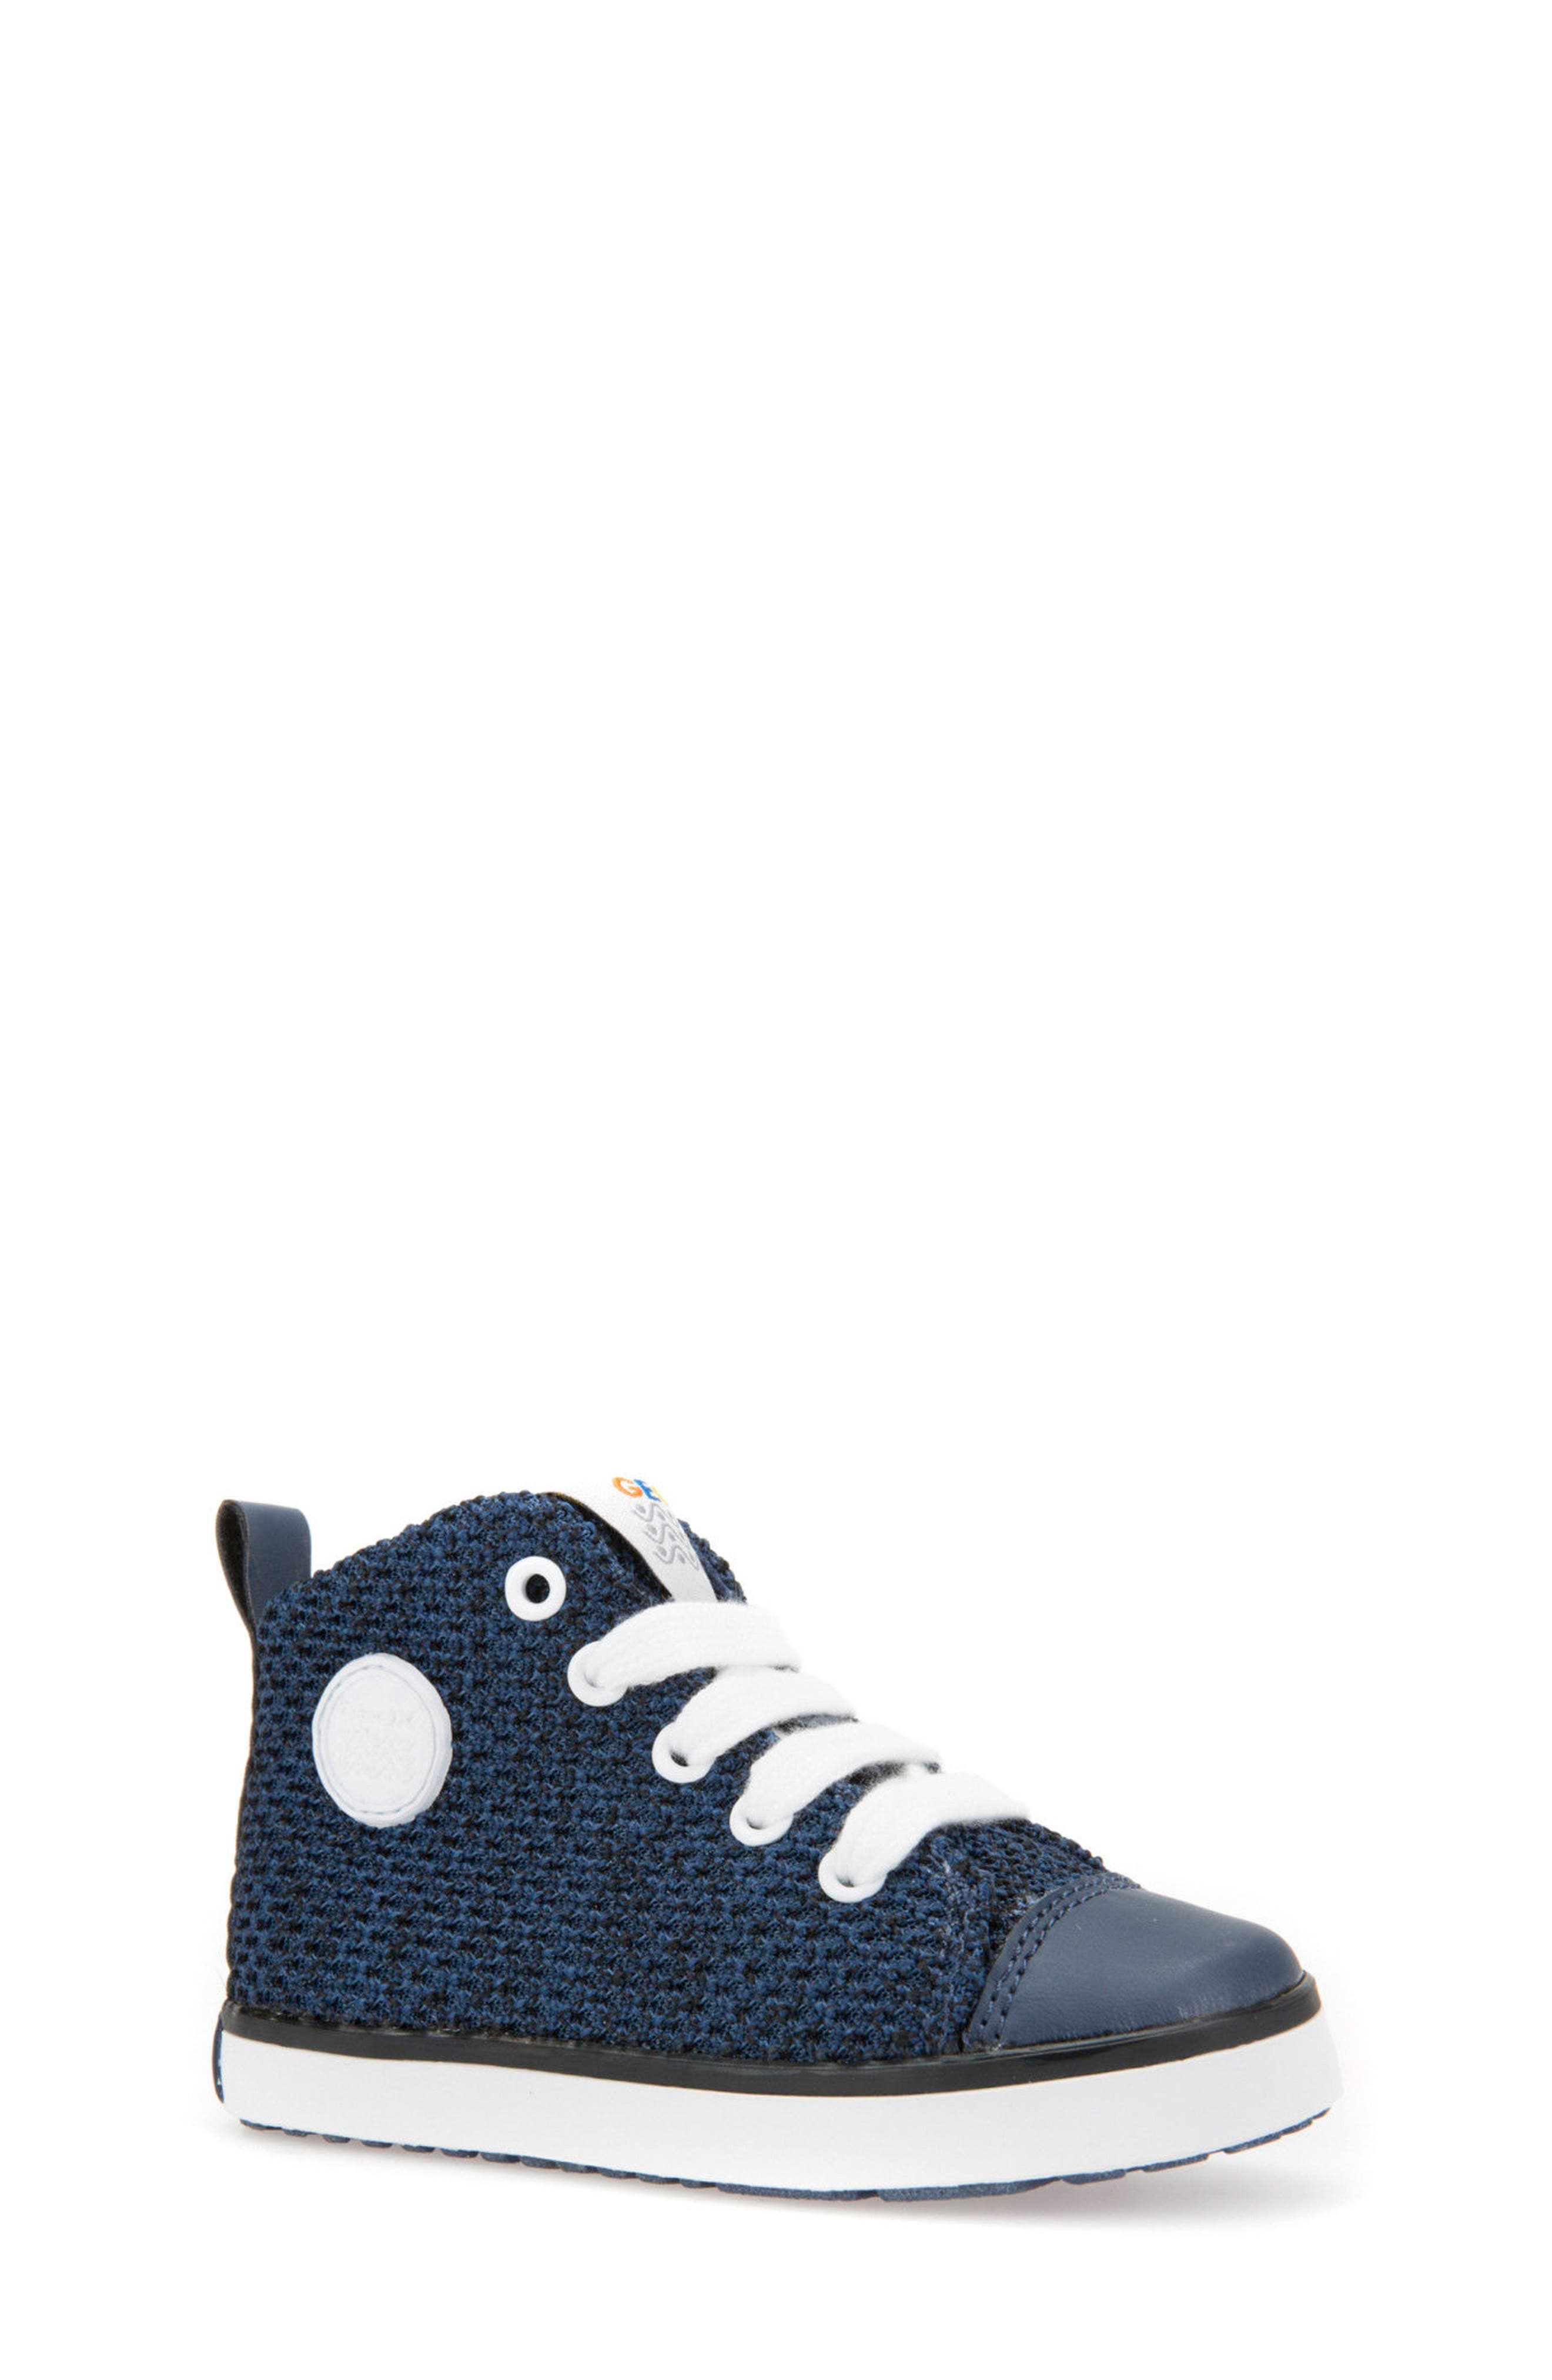 Kilwi Knit High Top Sneaker,                         Main,                         color, Navy